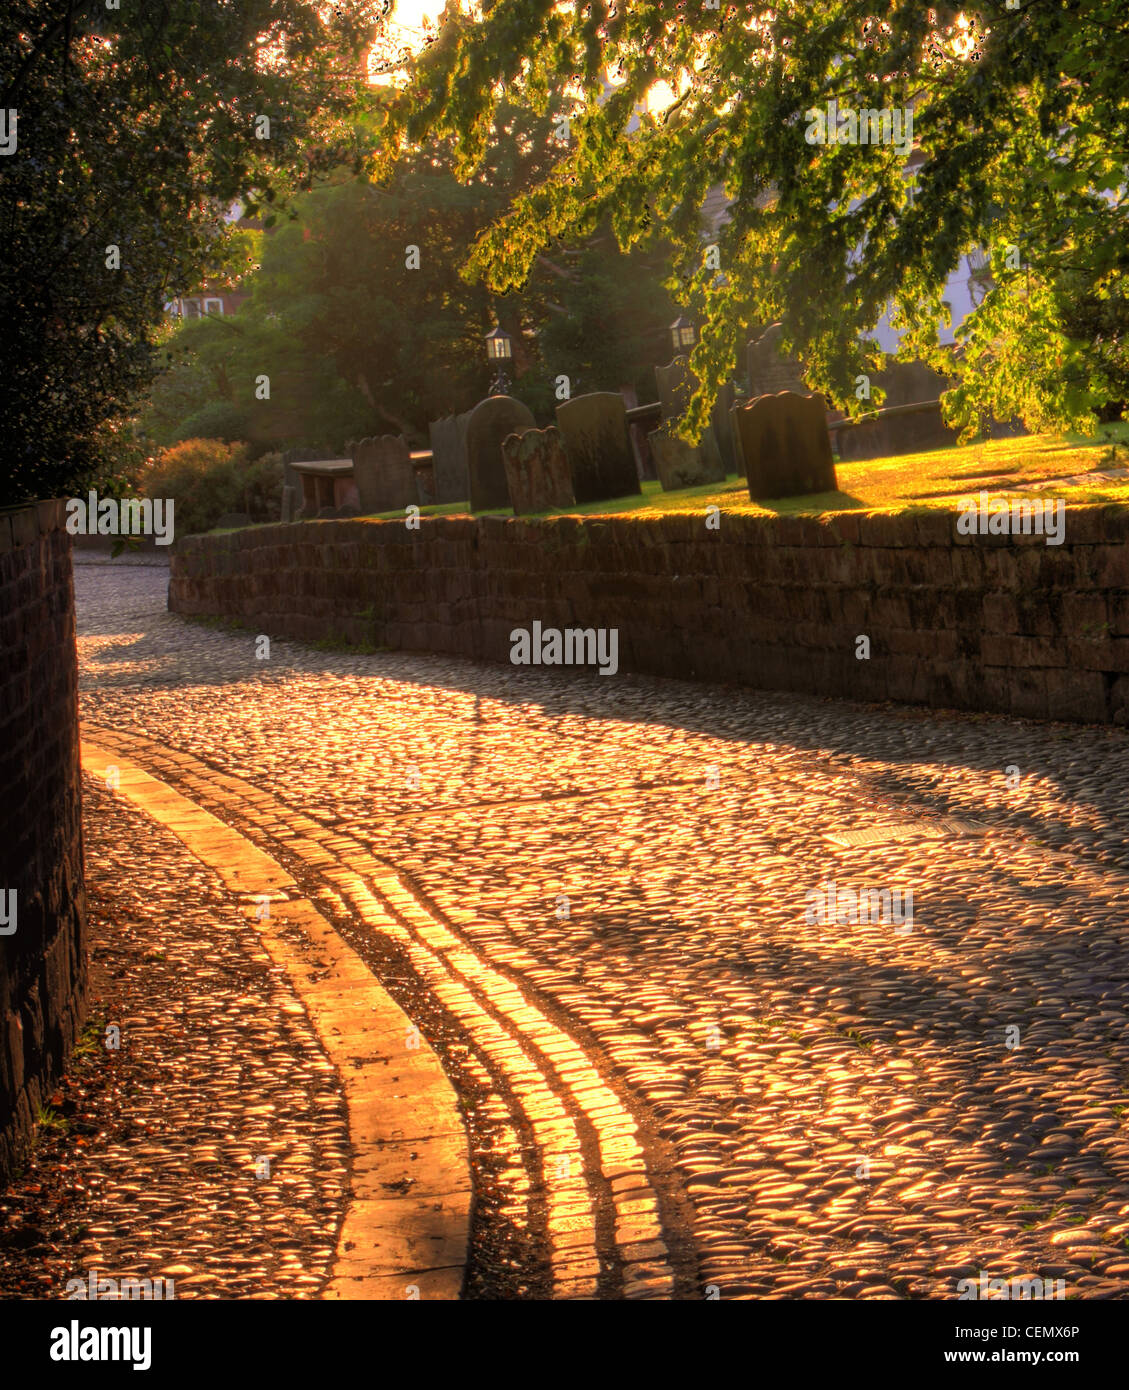 The cobbled area in Grappenhall Village, South Warrington at Sunset. (Church lane, adjacent to St Wilfrids parish Stock Photo